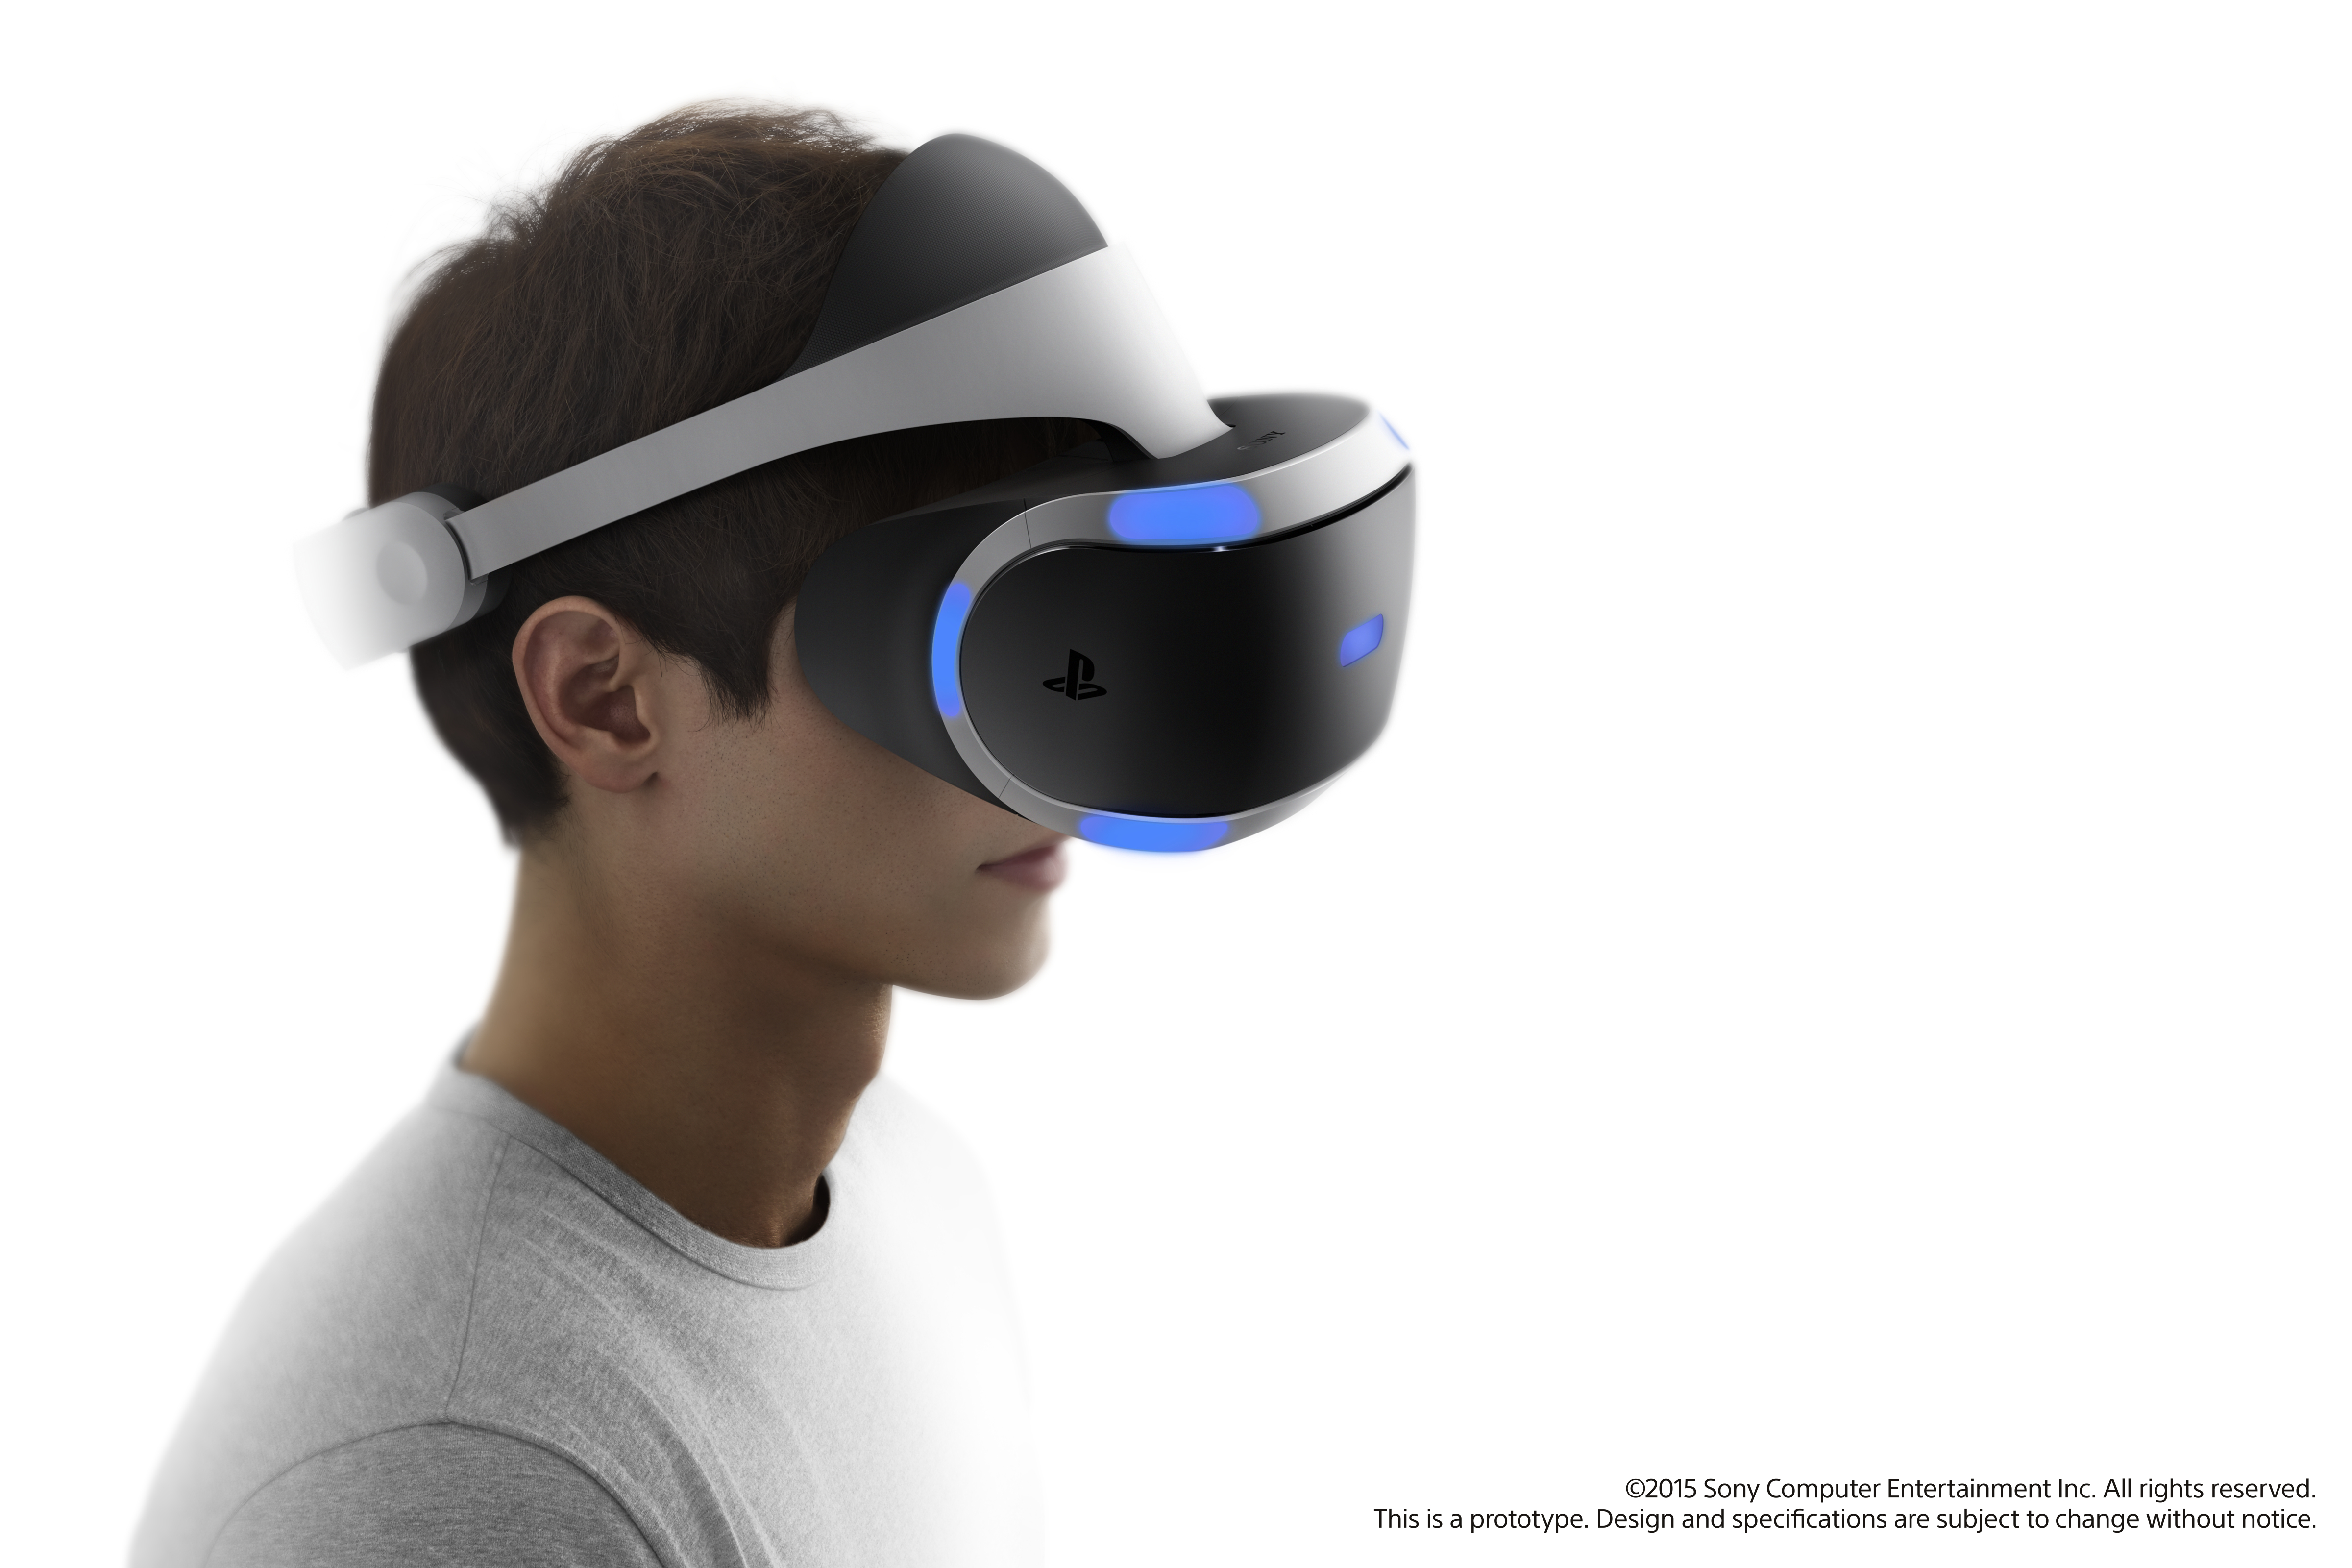 A rendering of Sony's Project Morpheus virtual reality headset, released during the 2015 GDC conference.